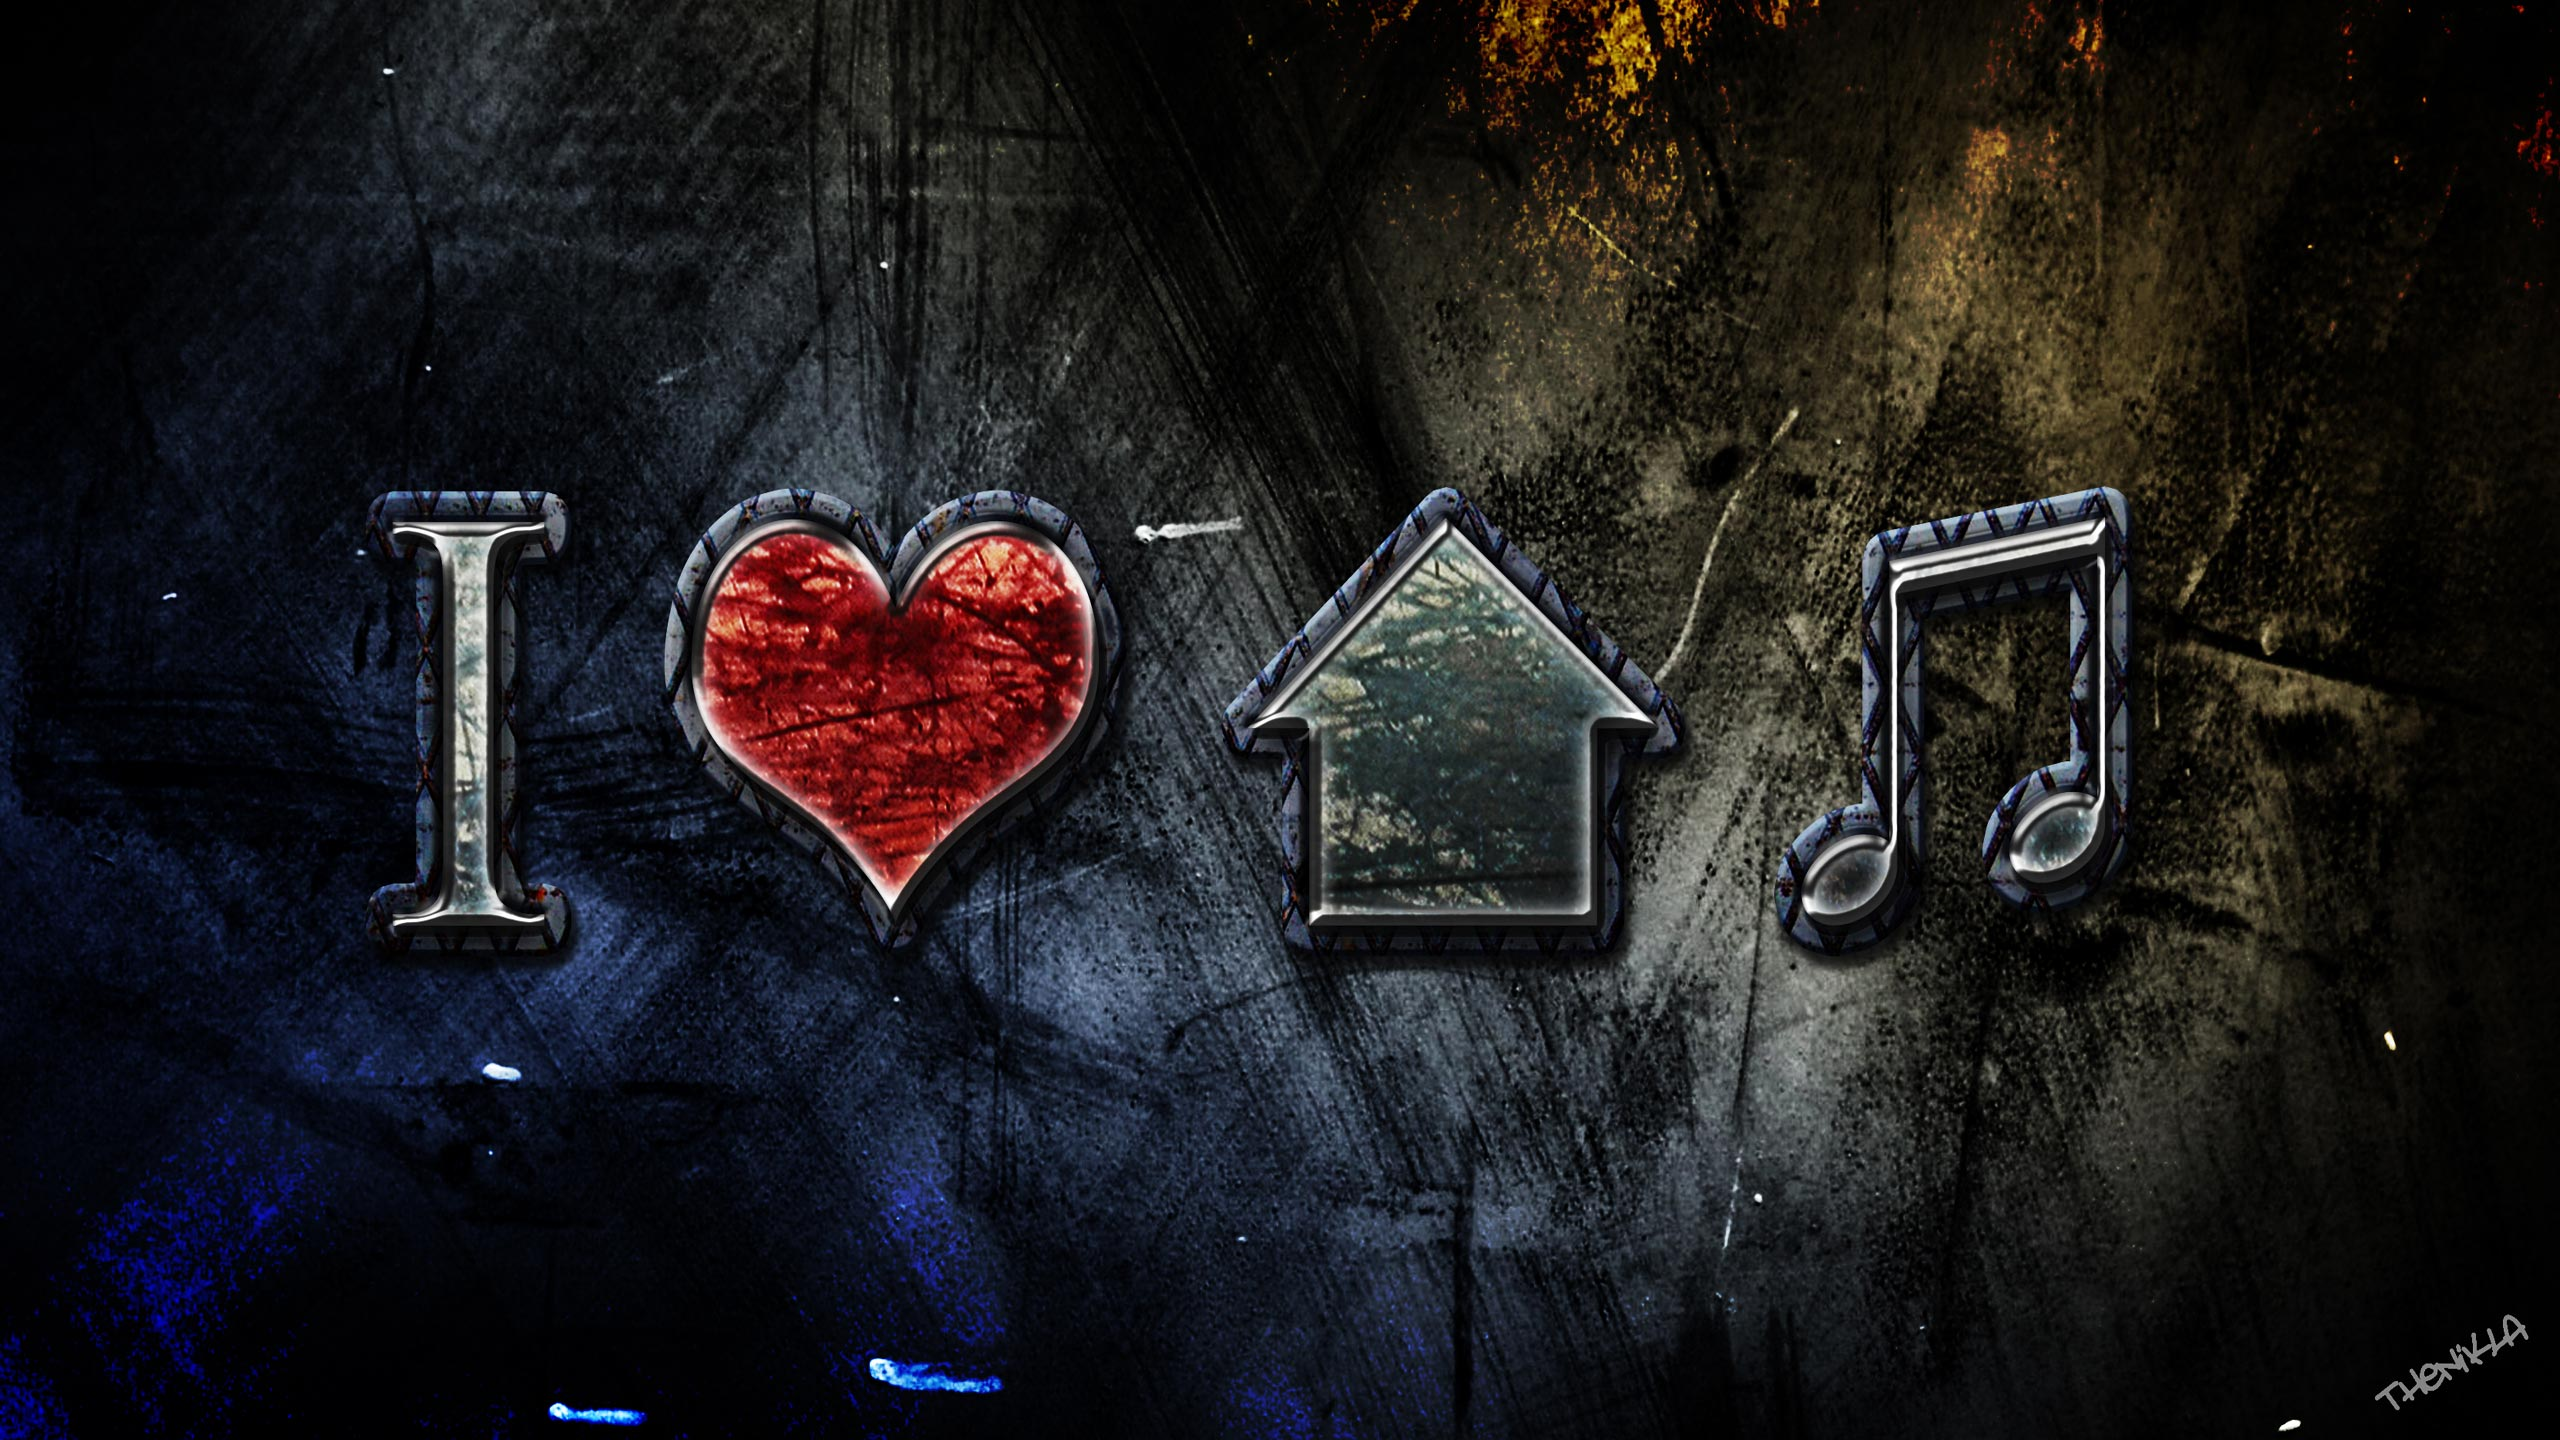 House Music Wallpapers Wallpapersafari